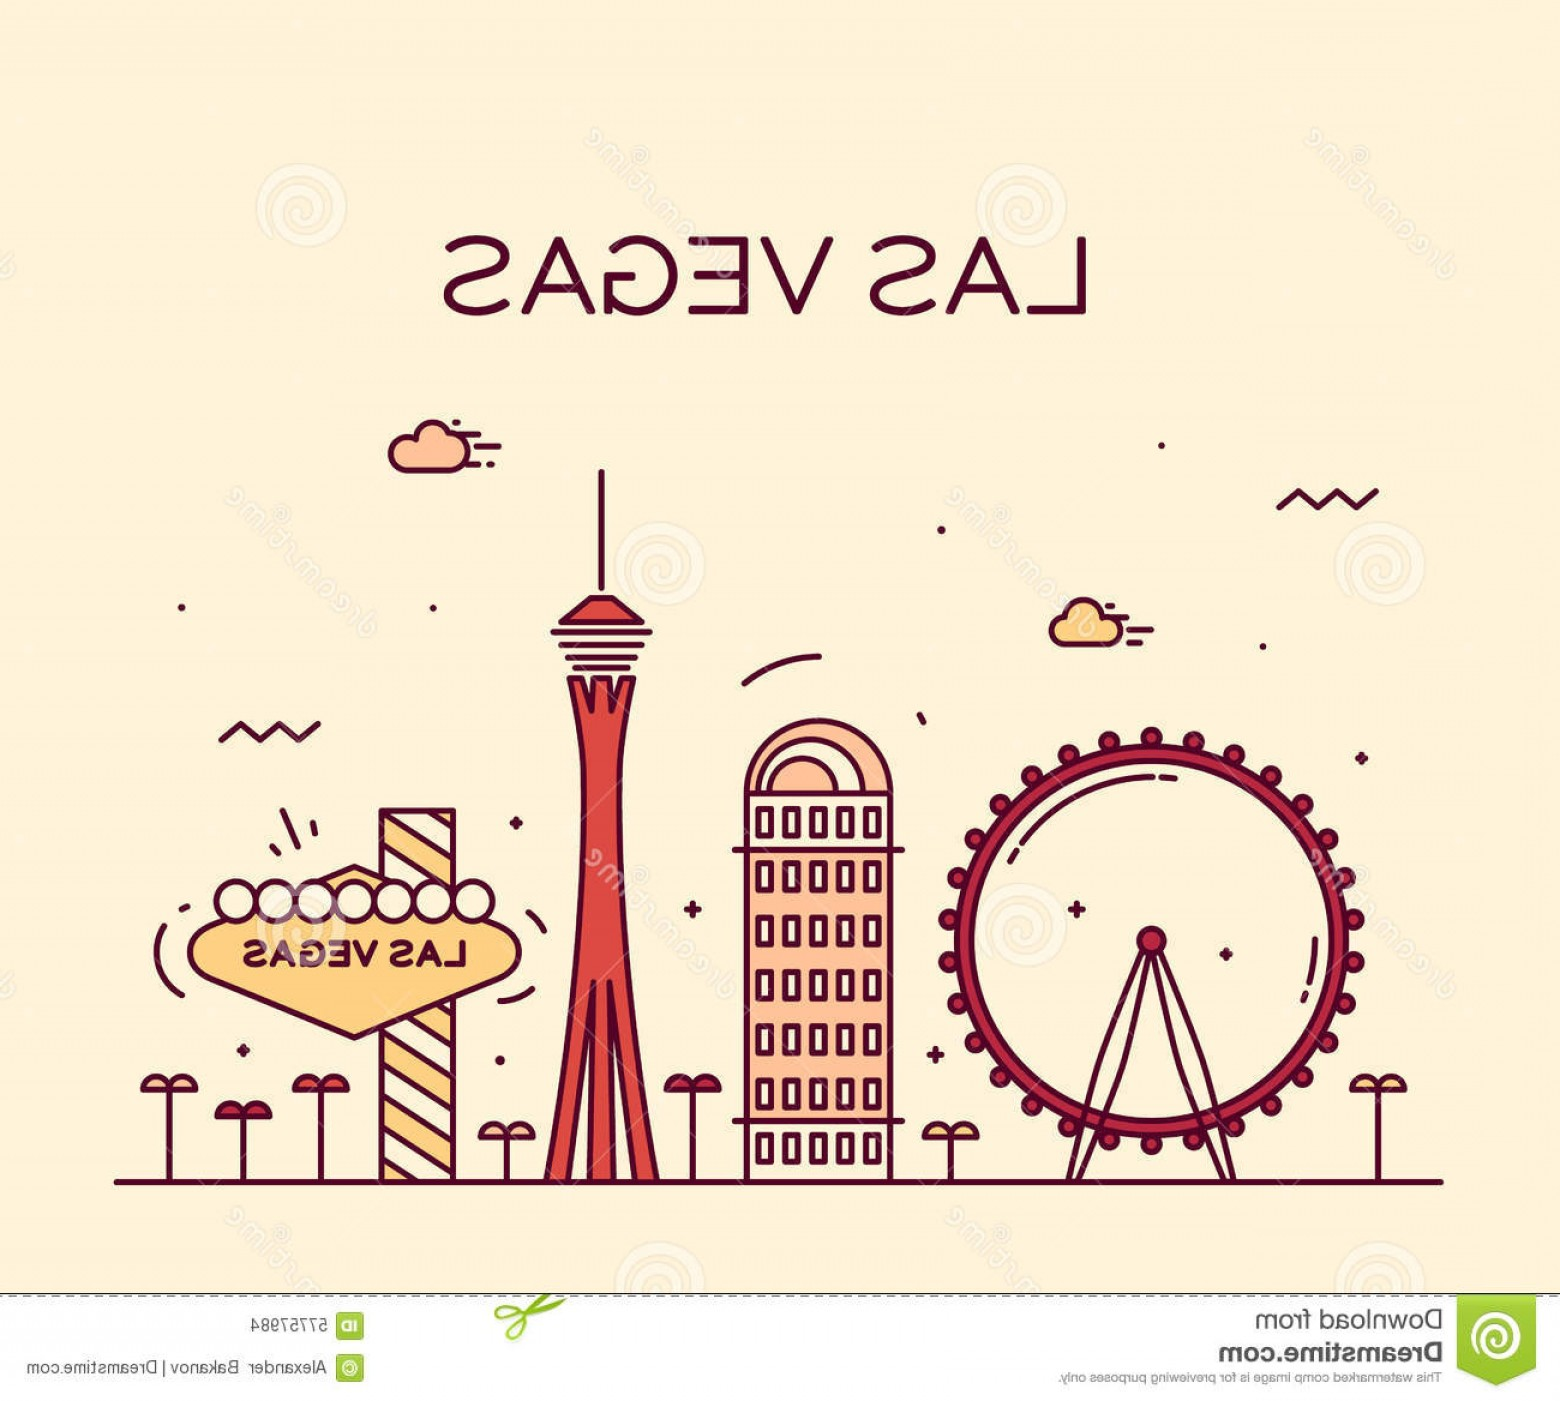 Married In Vegas Vector Art: Stock Photo Las Vegas Skyline Vector Illustration Linear Big City Architecture Vintage Image